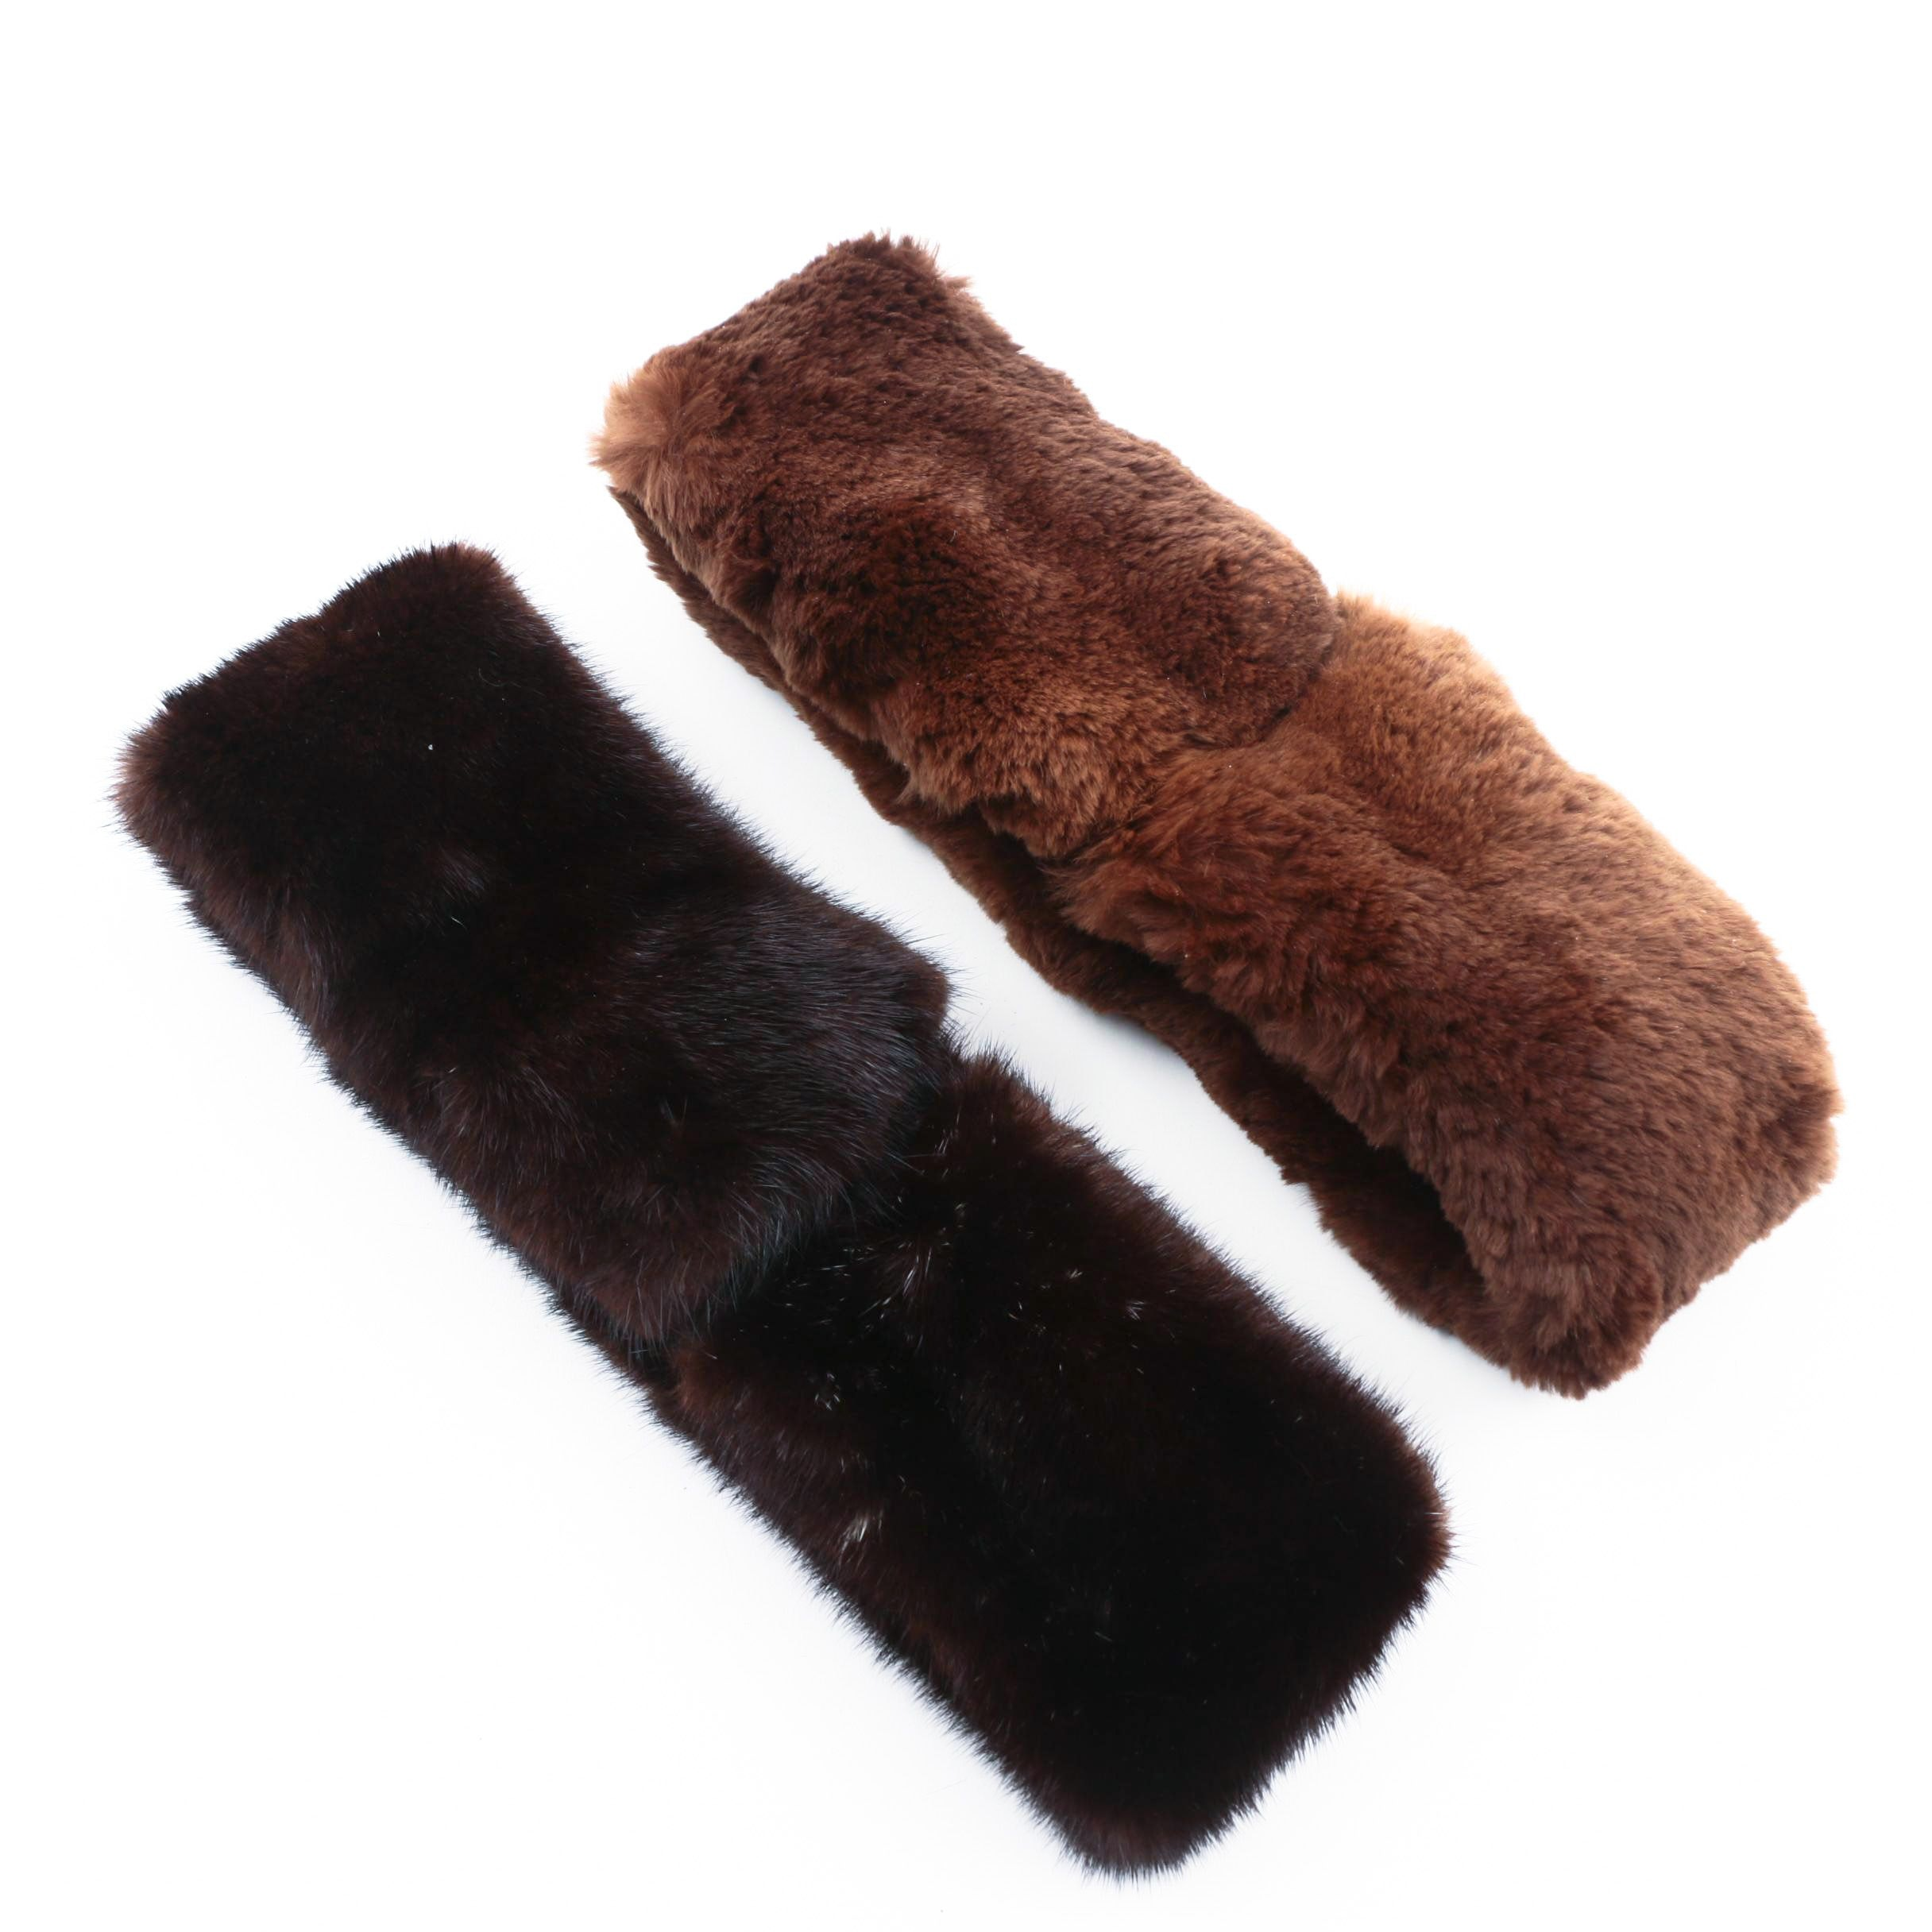 Two Fur Collars with Velcro Fasteners